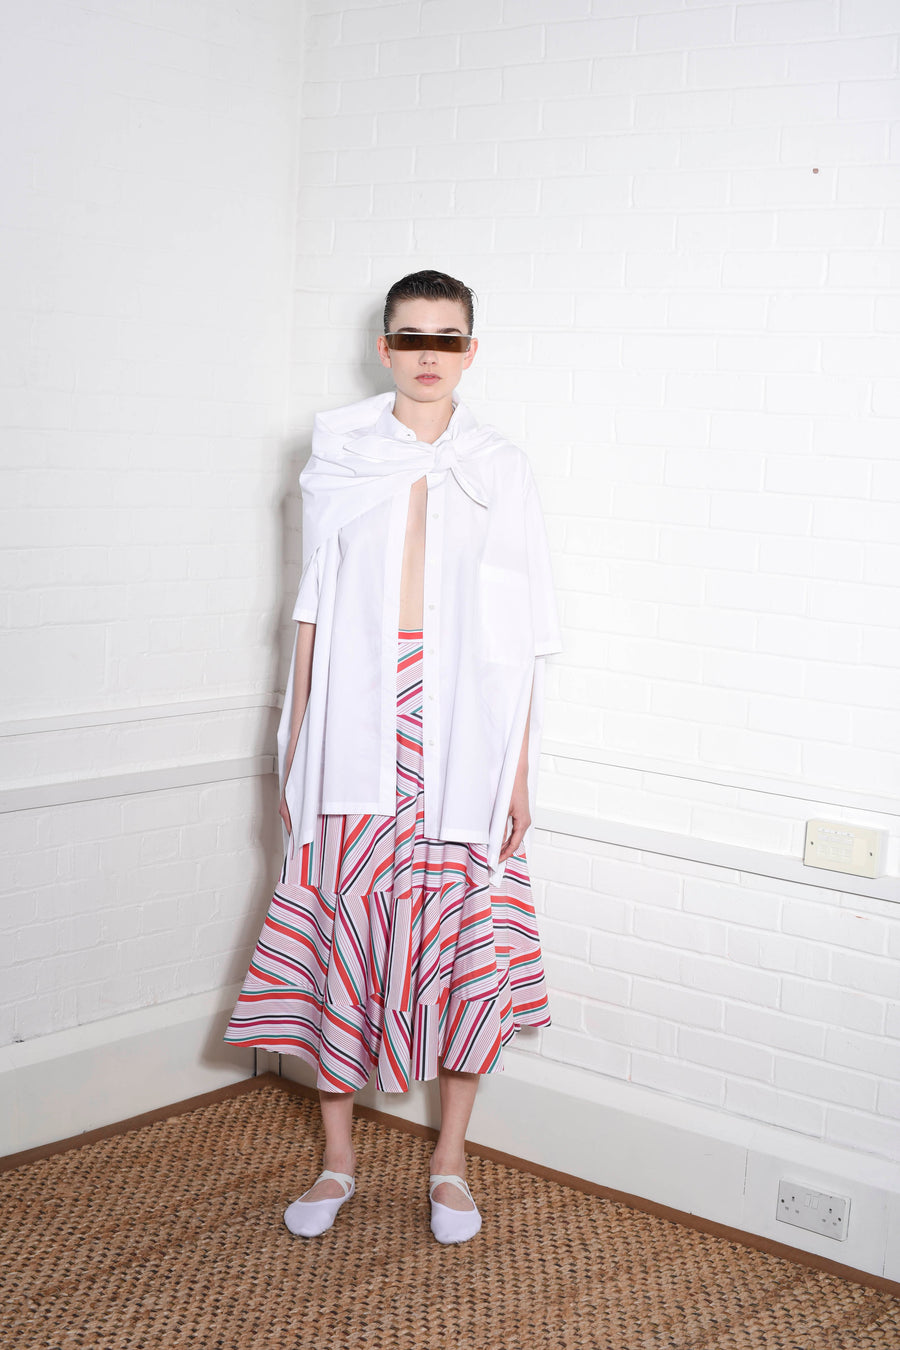 SS2019 / Look 5